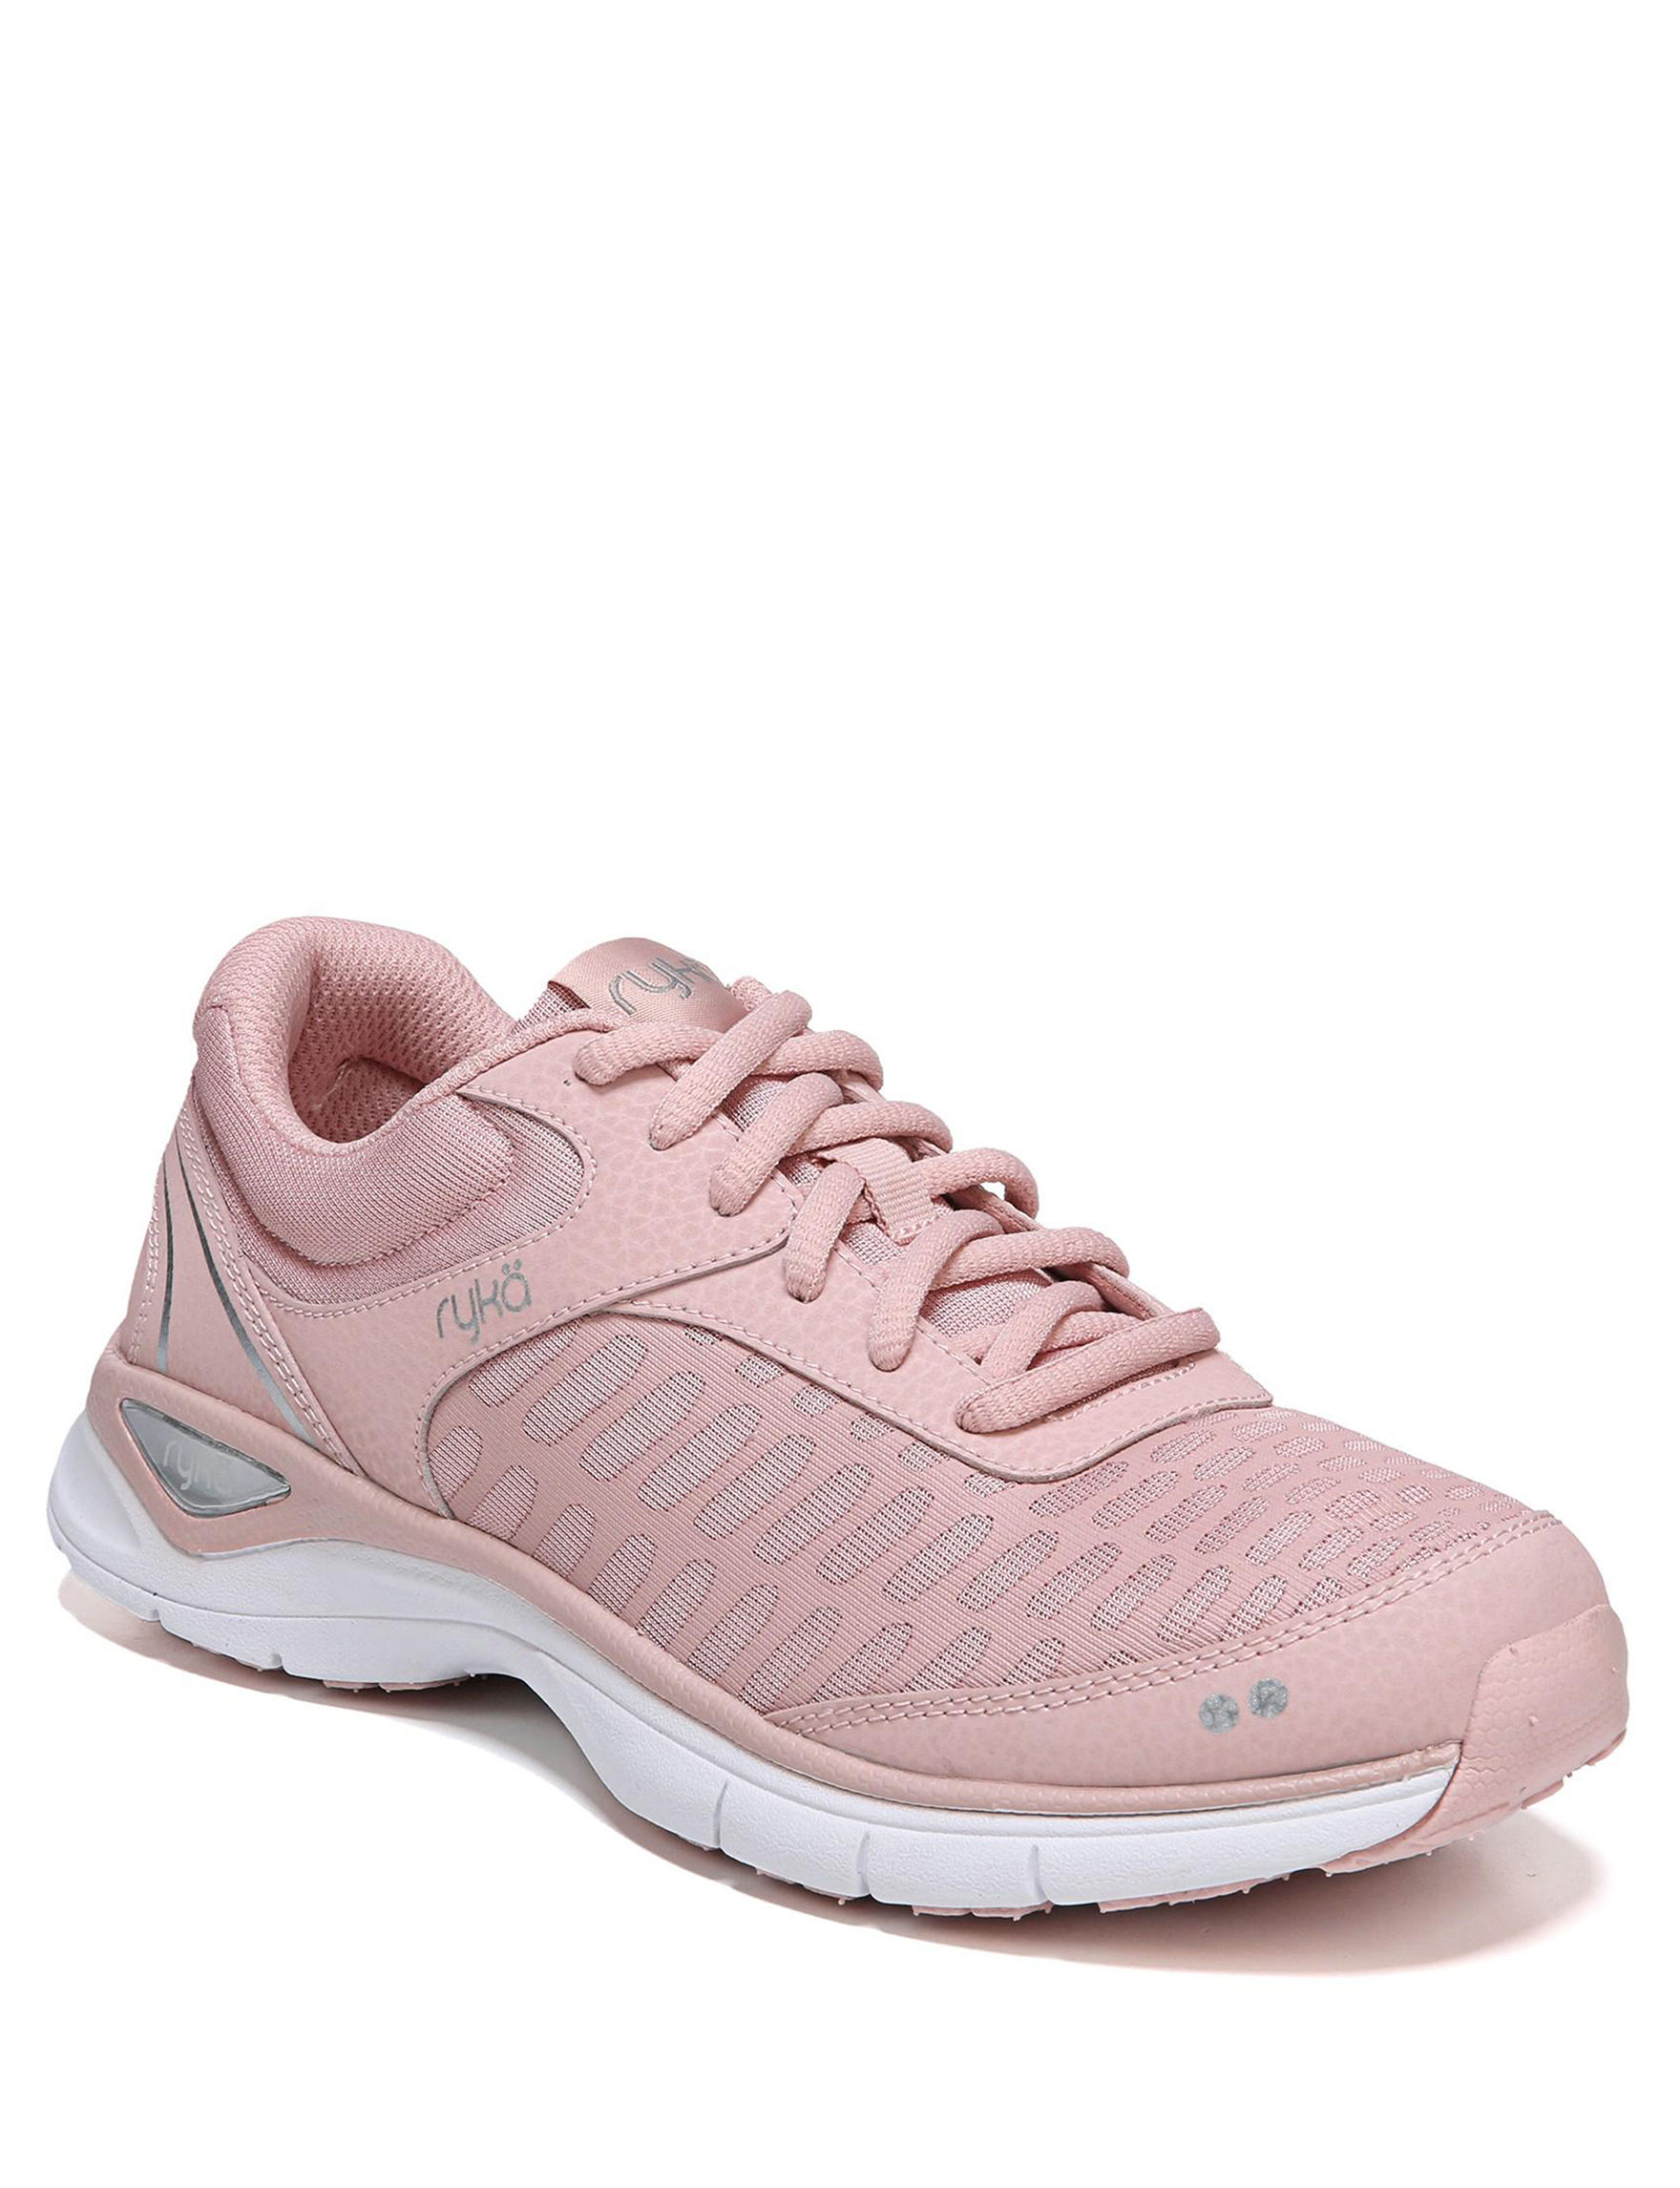 Ryka Pink Comfort Shoes